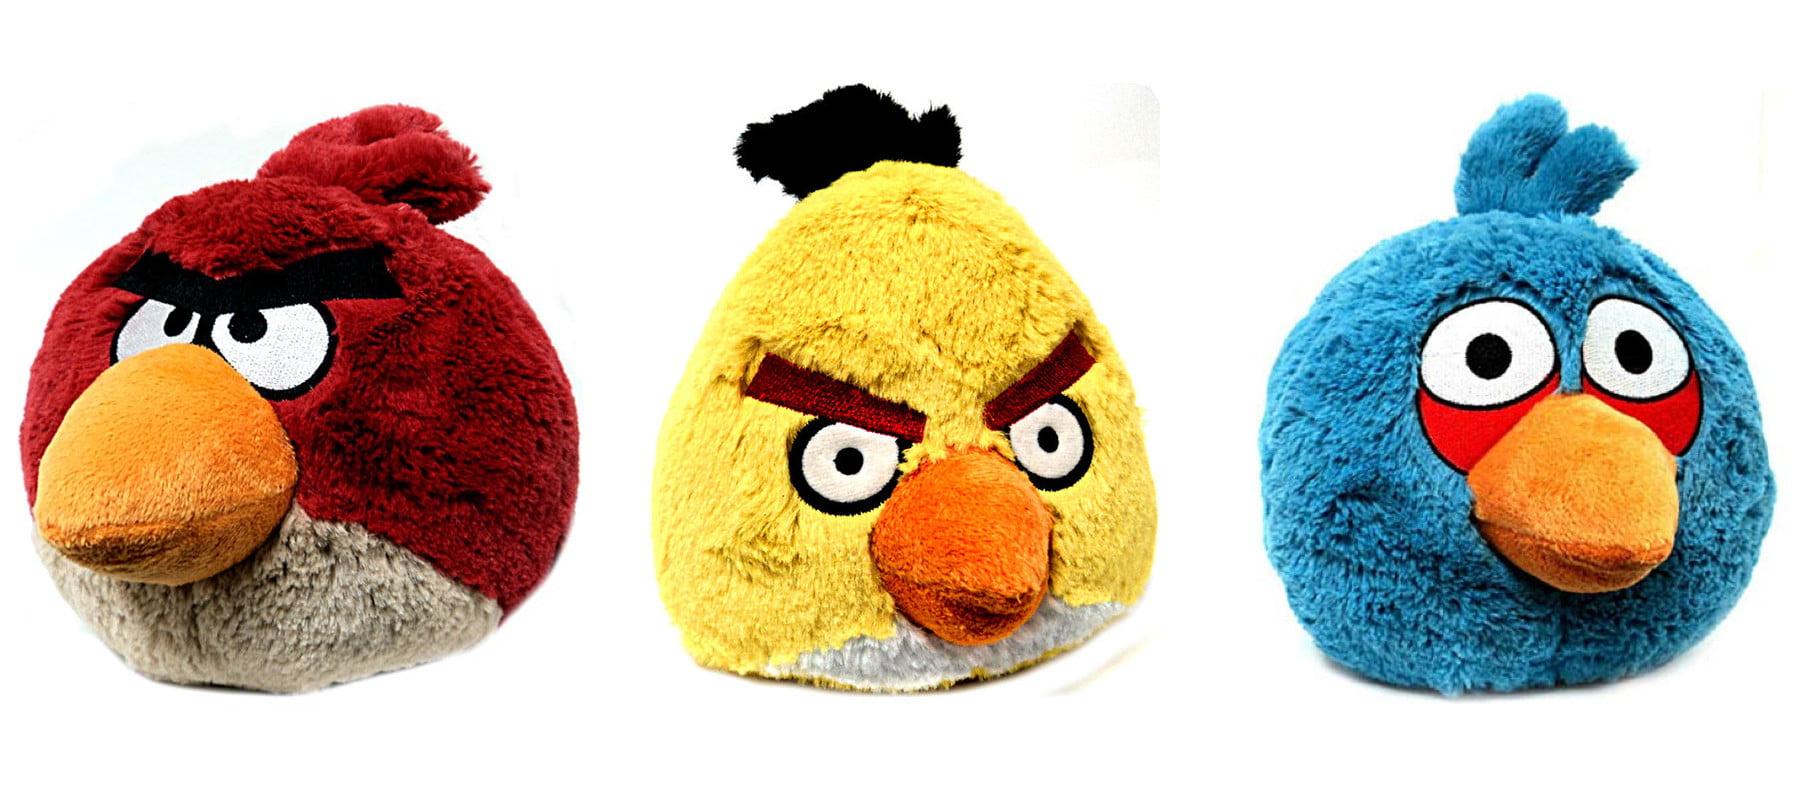 Angry Birds Toys : Plush angry birds toys are perfect for hurling at your